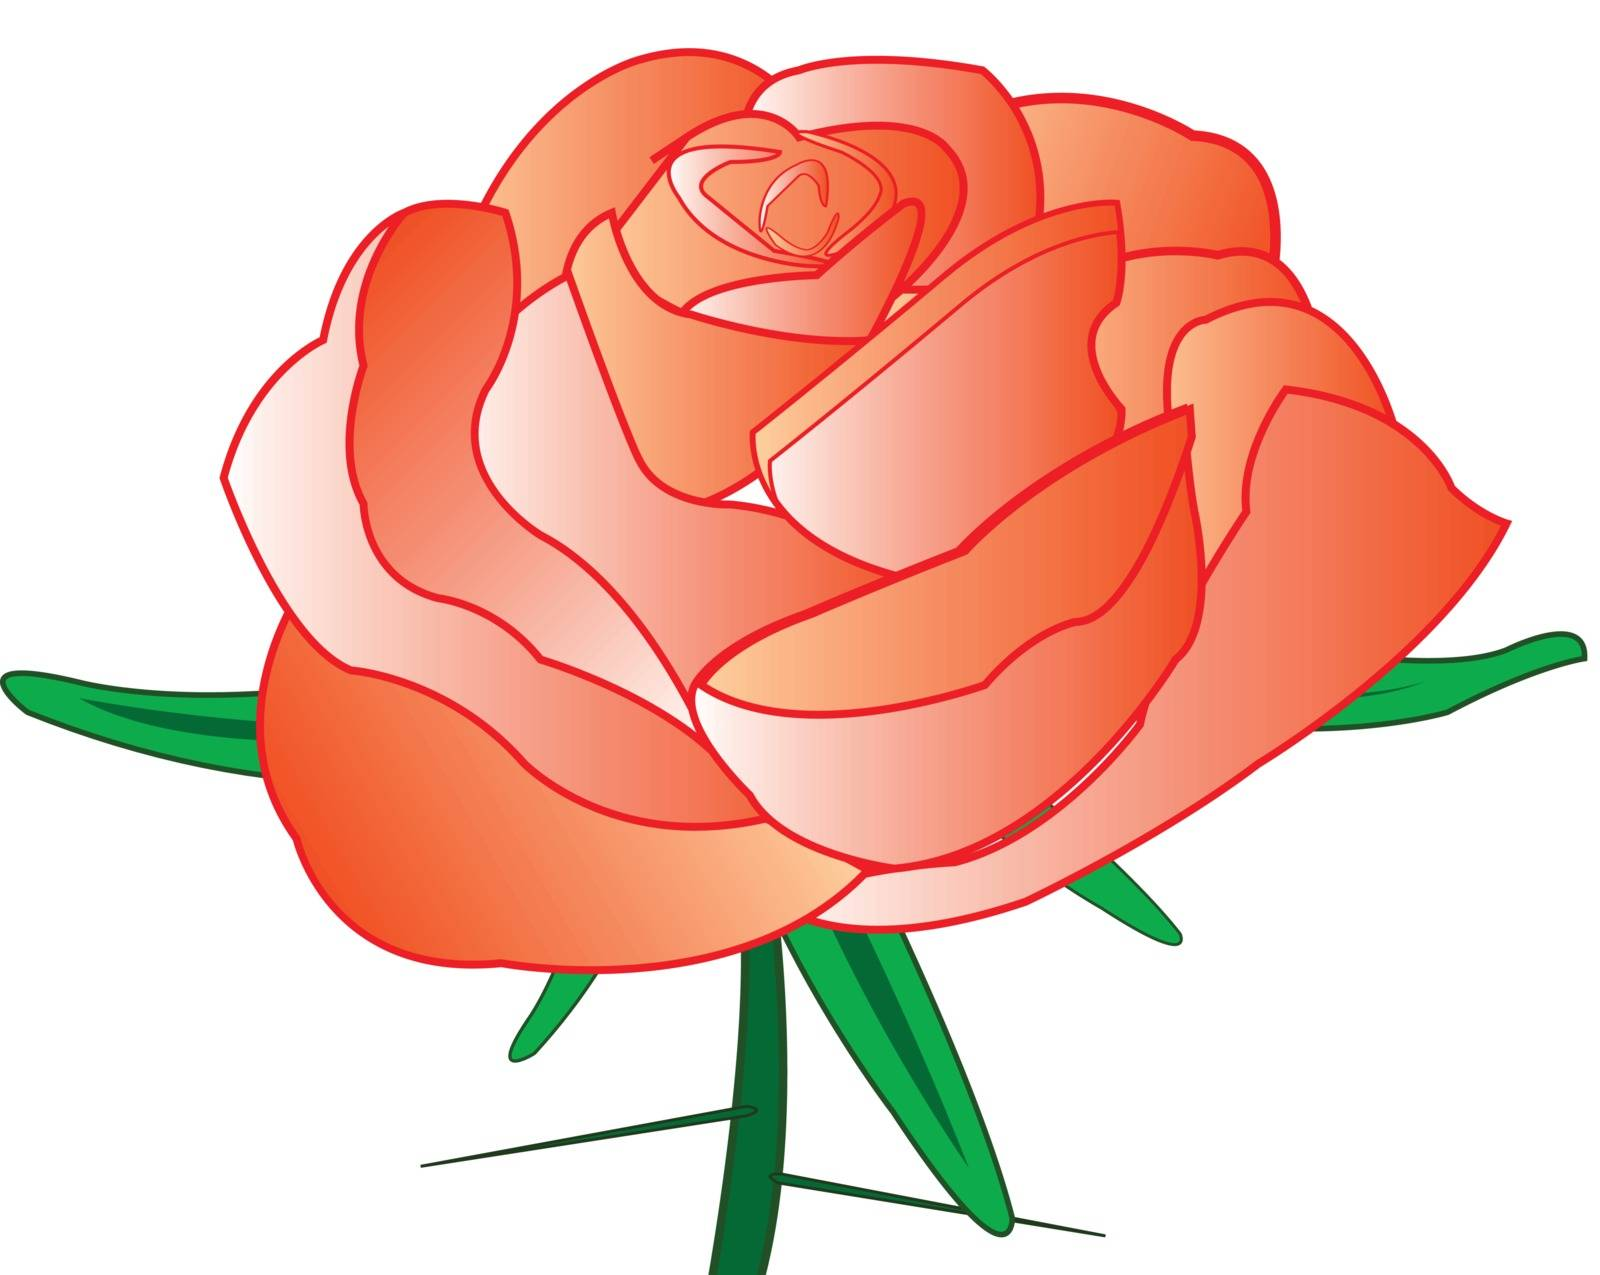 Red rose with thorn on white background is insulated